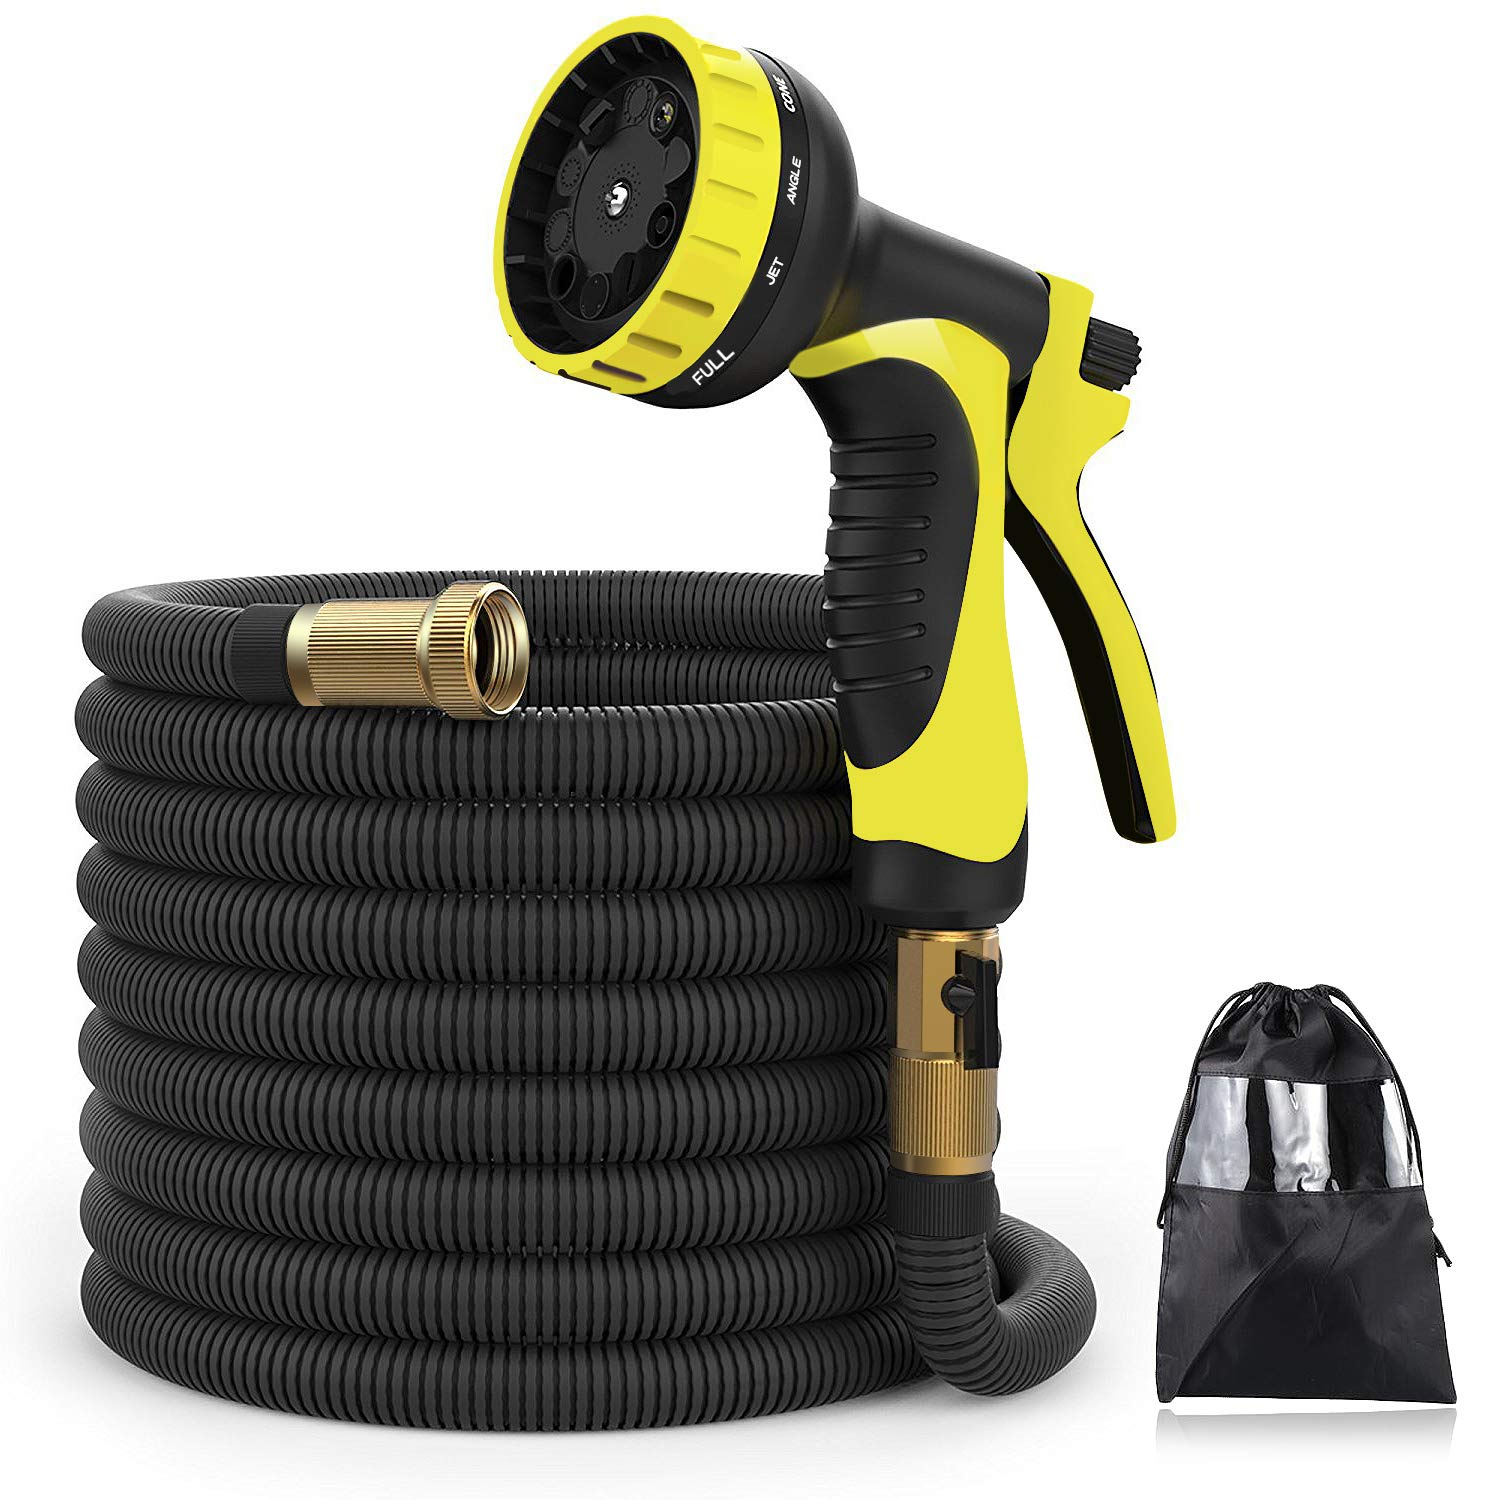 XBUTY New Version Garden Hose, 50FT Expandable Water Hose 9 Patern Spray Nozzle, High Pressure Extra Strength Fabric Double Latex Core 3/4 Solid Brass Fittings with Carrying Bag